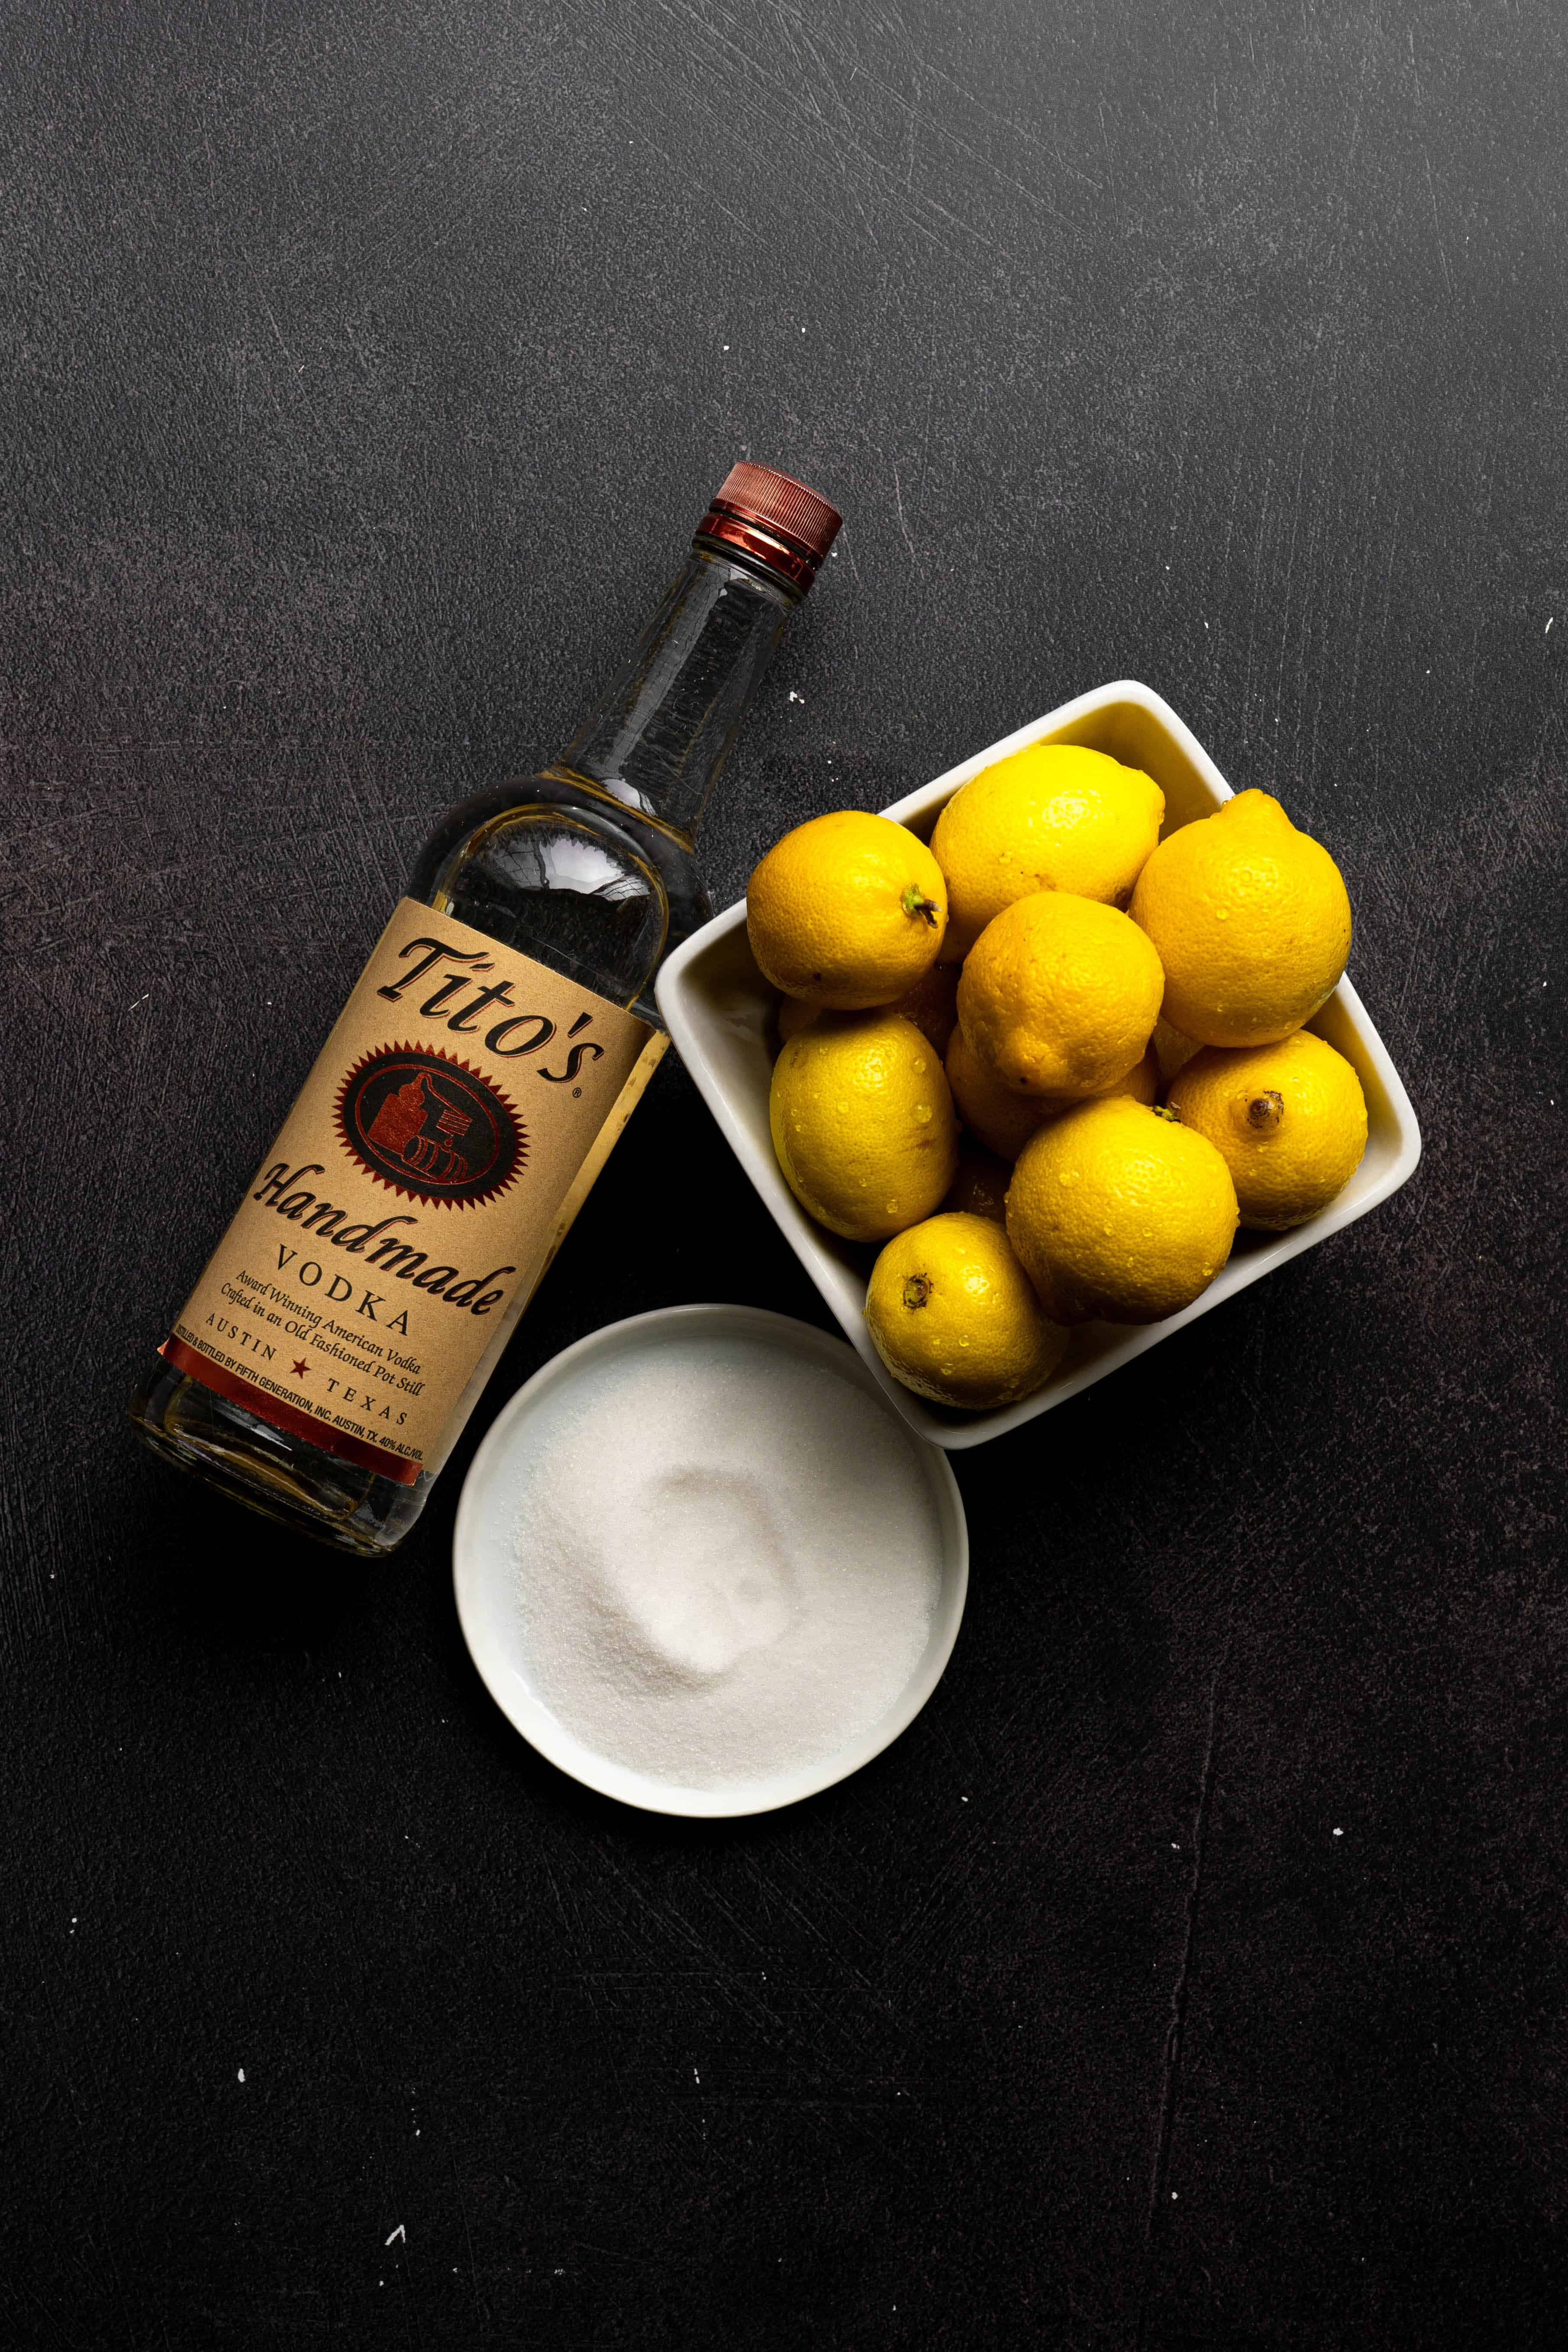 A bottle of vodka, a bowl of lemons and a bowl of sugar